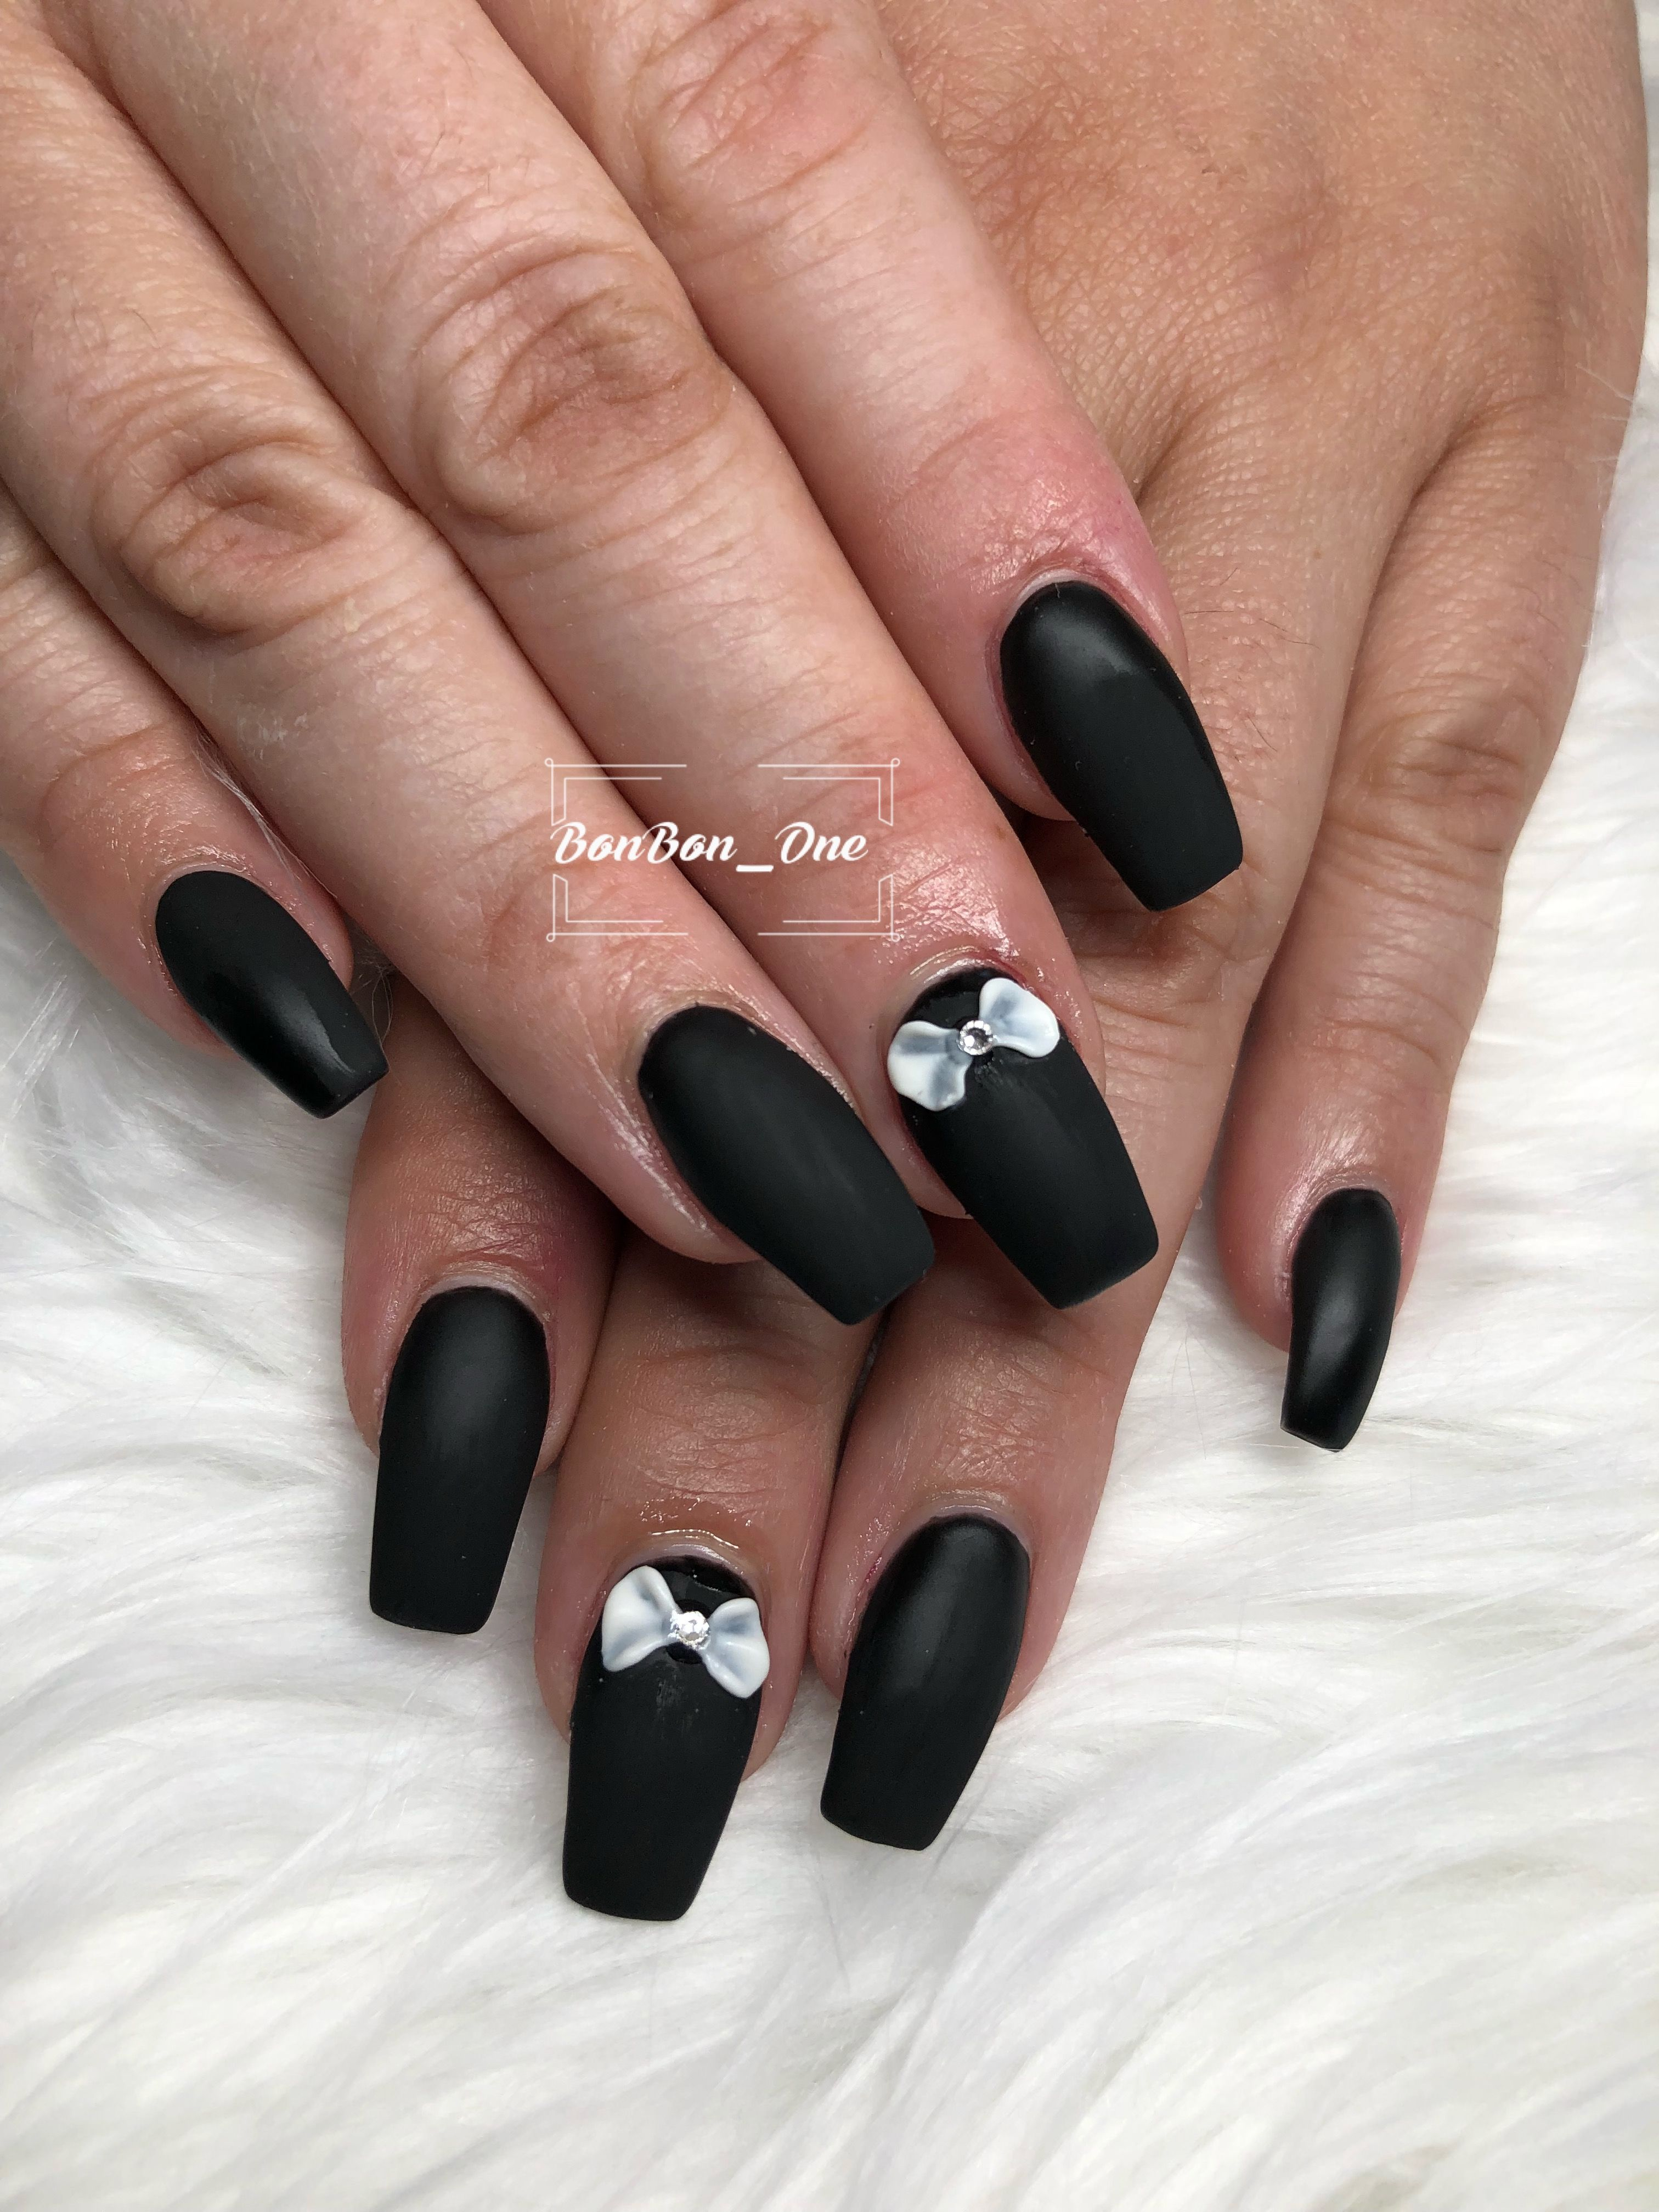 Black And Matte Top Coat It S Look Great With The 3d Bows Design Short Coffin Shape Nails Nail Art Bow Design